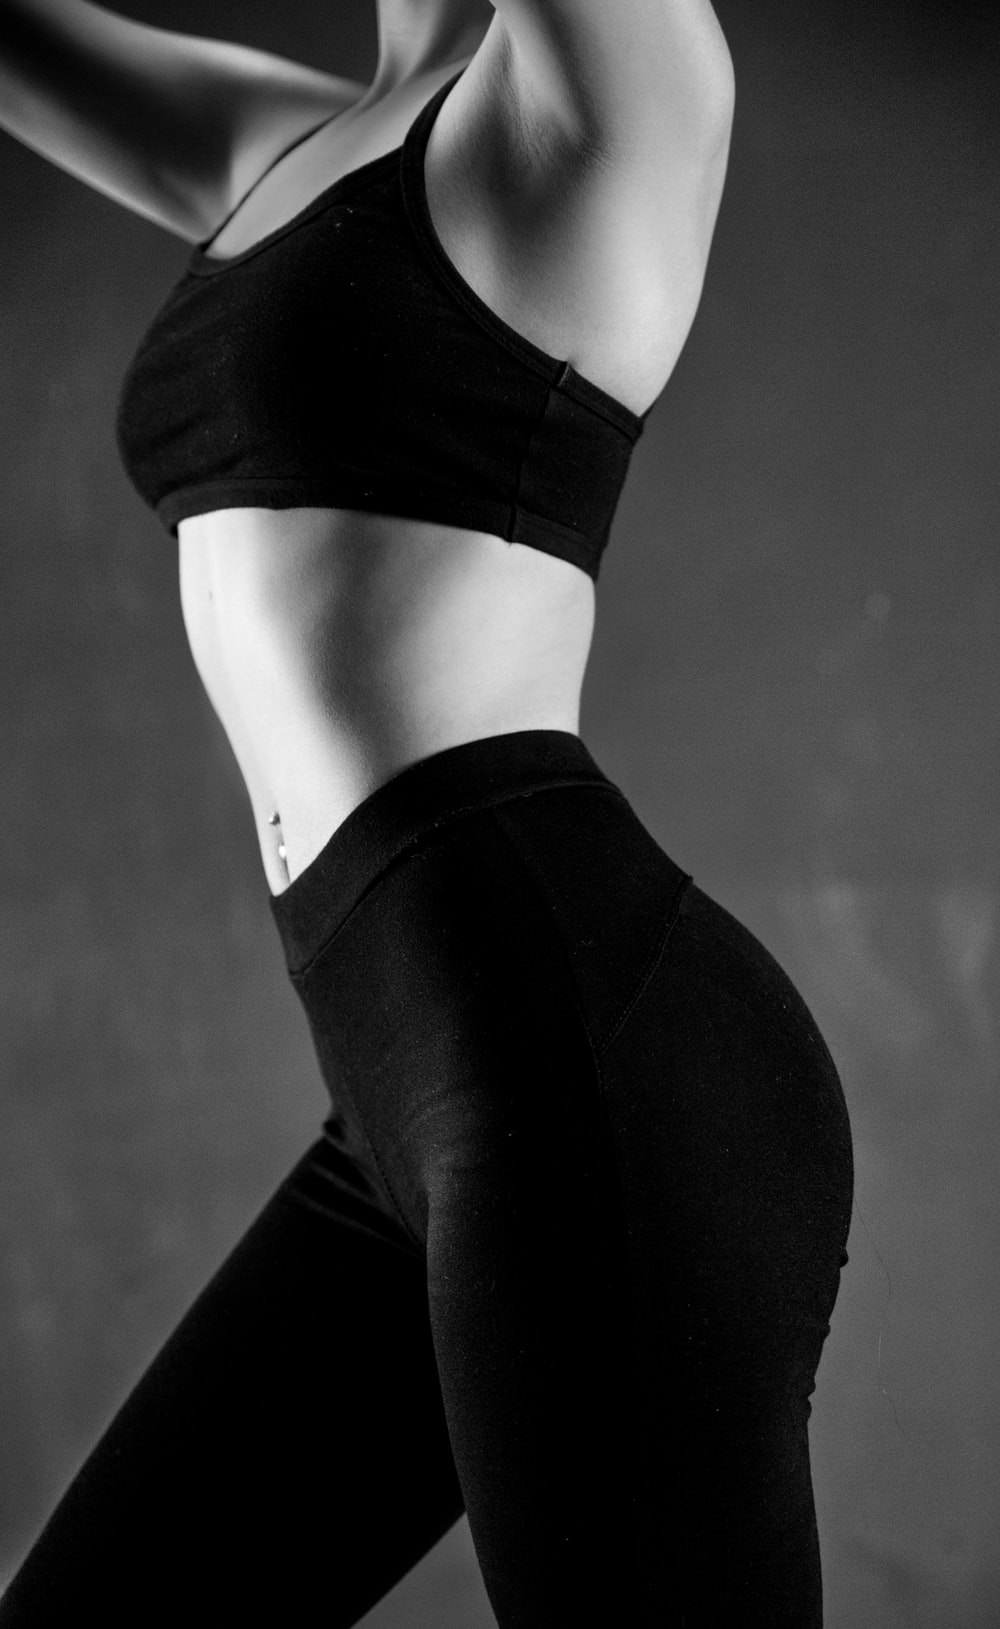 grayscale photo of person wearing sports bra and leggings